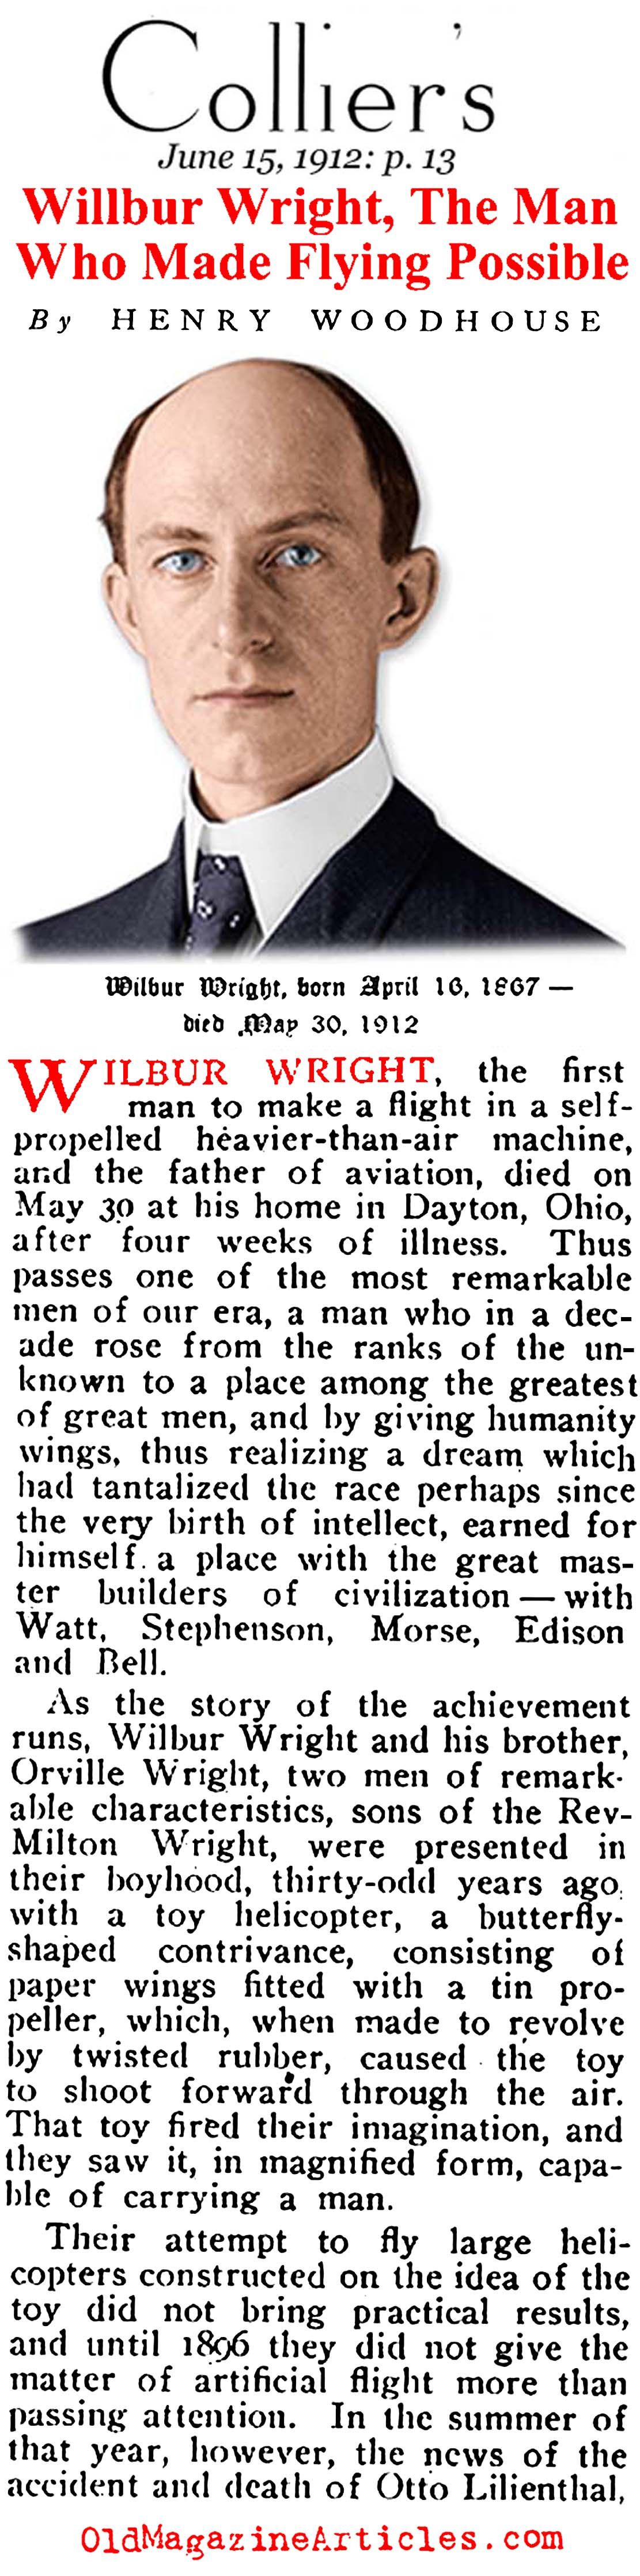 Wilbur Wright, R.I.P. (Collier's, 1912)